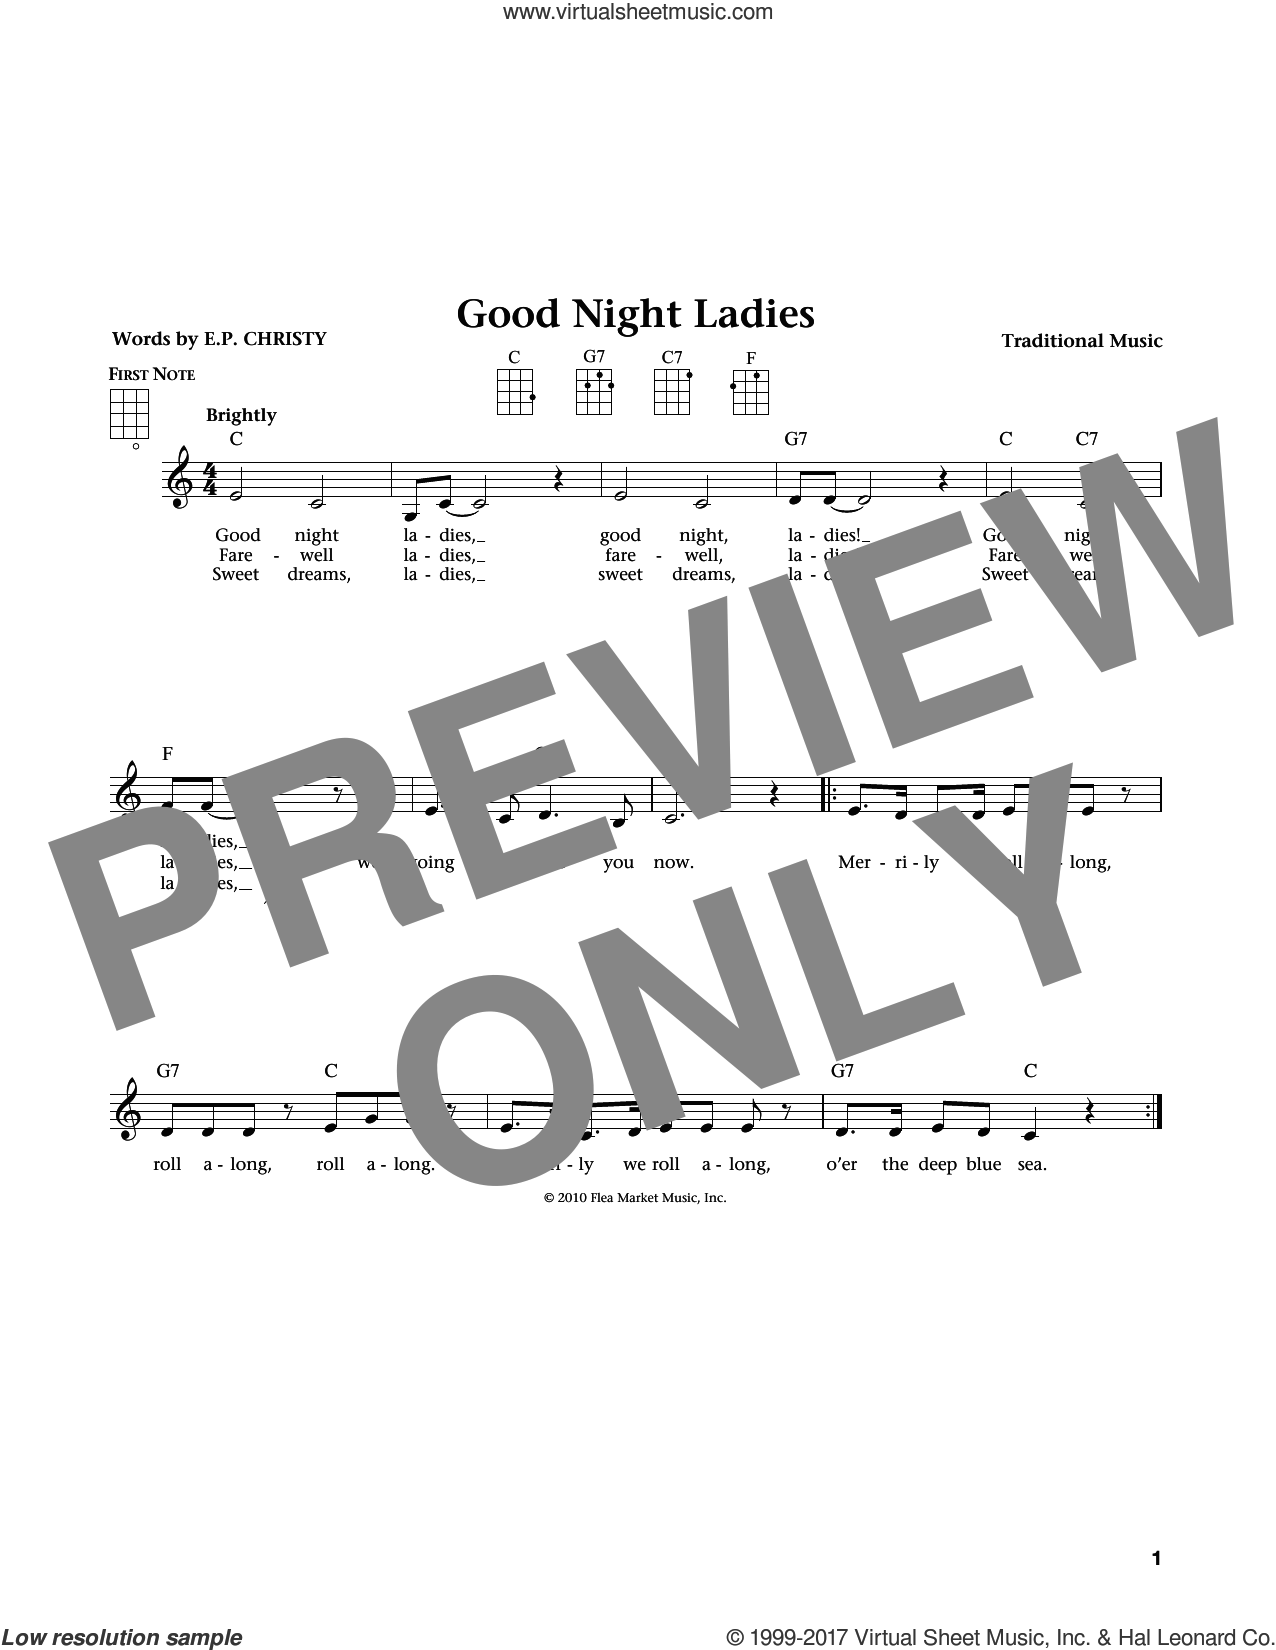 Good Night Ladies sheet music for ukulele by Traditional Music. Score Image Preview.